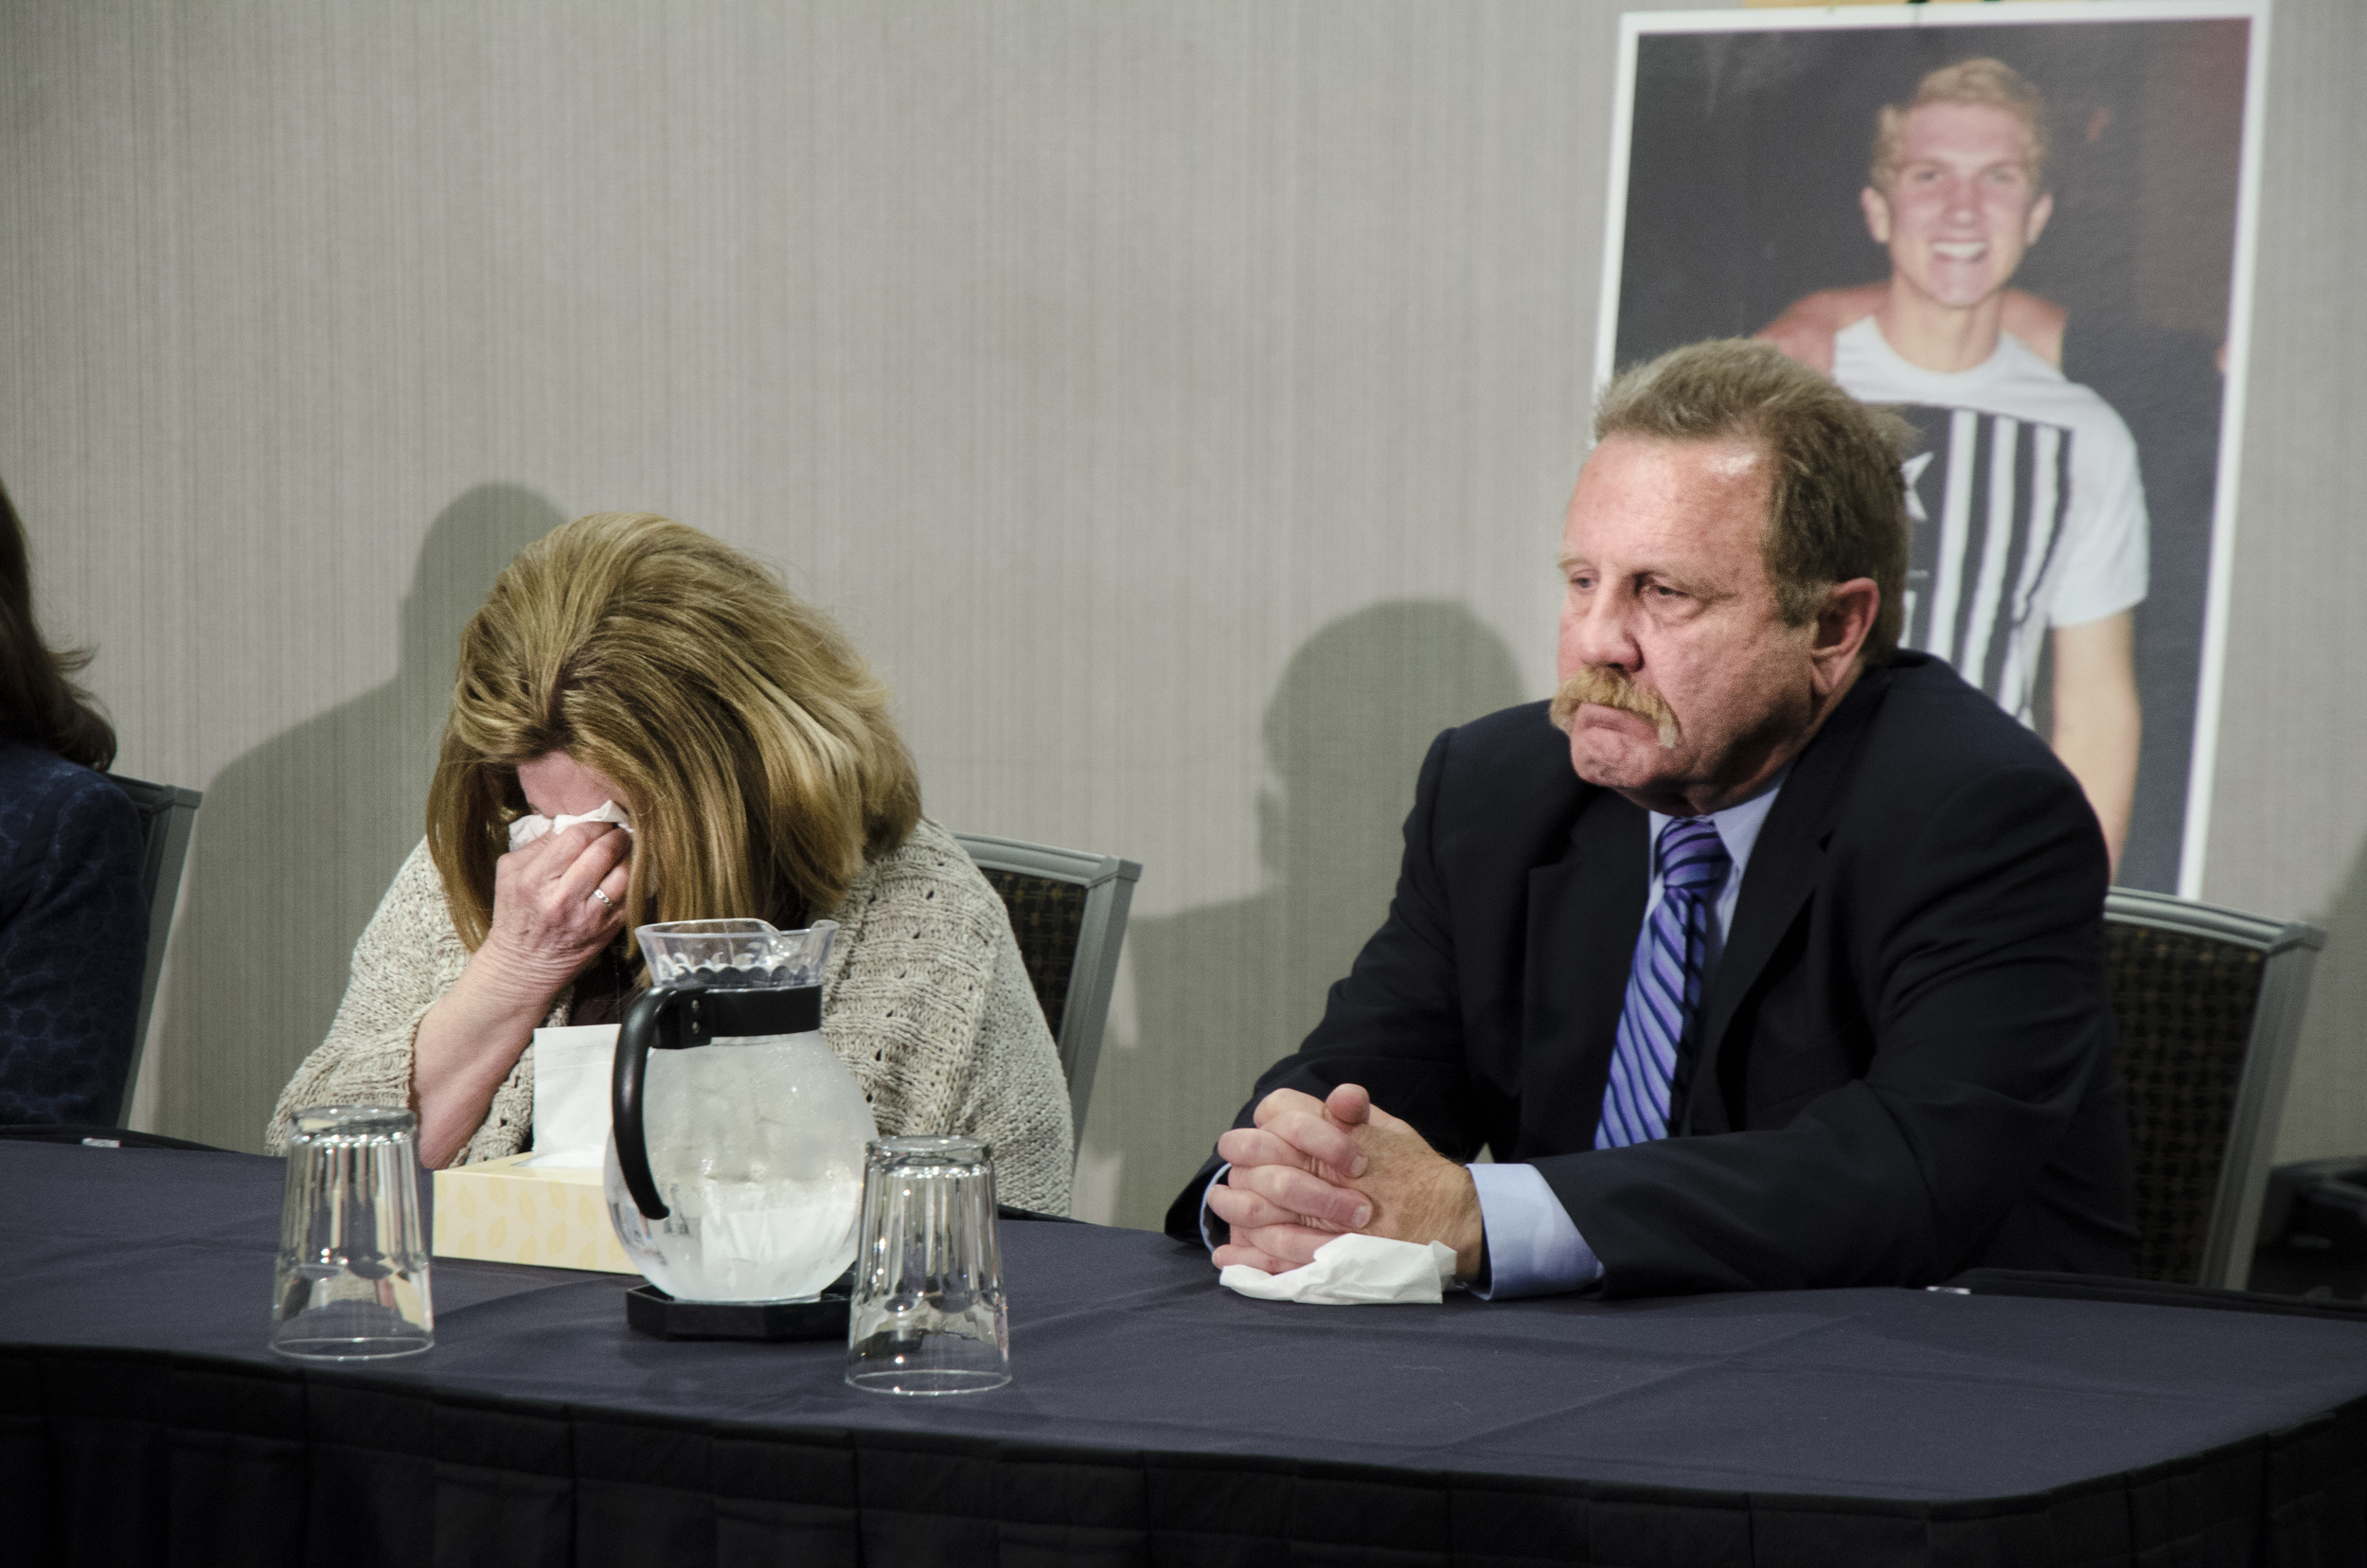 Gina McMillan-Weese sits next to Ryan's father Walter McMillan as she covers her face and cries during the news conference held by their attorneys on February 23, 2016 in Denton, Texas.